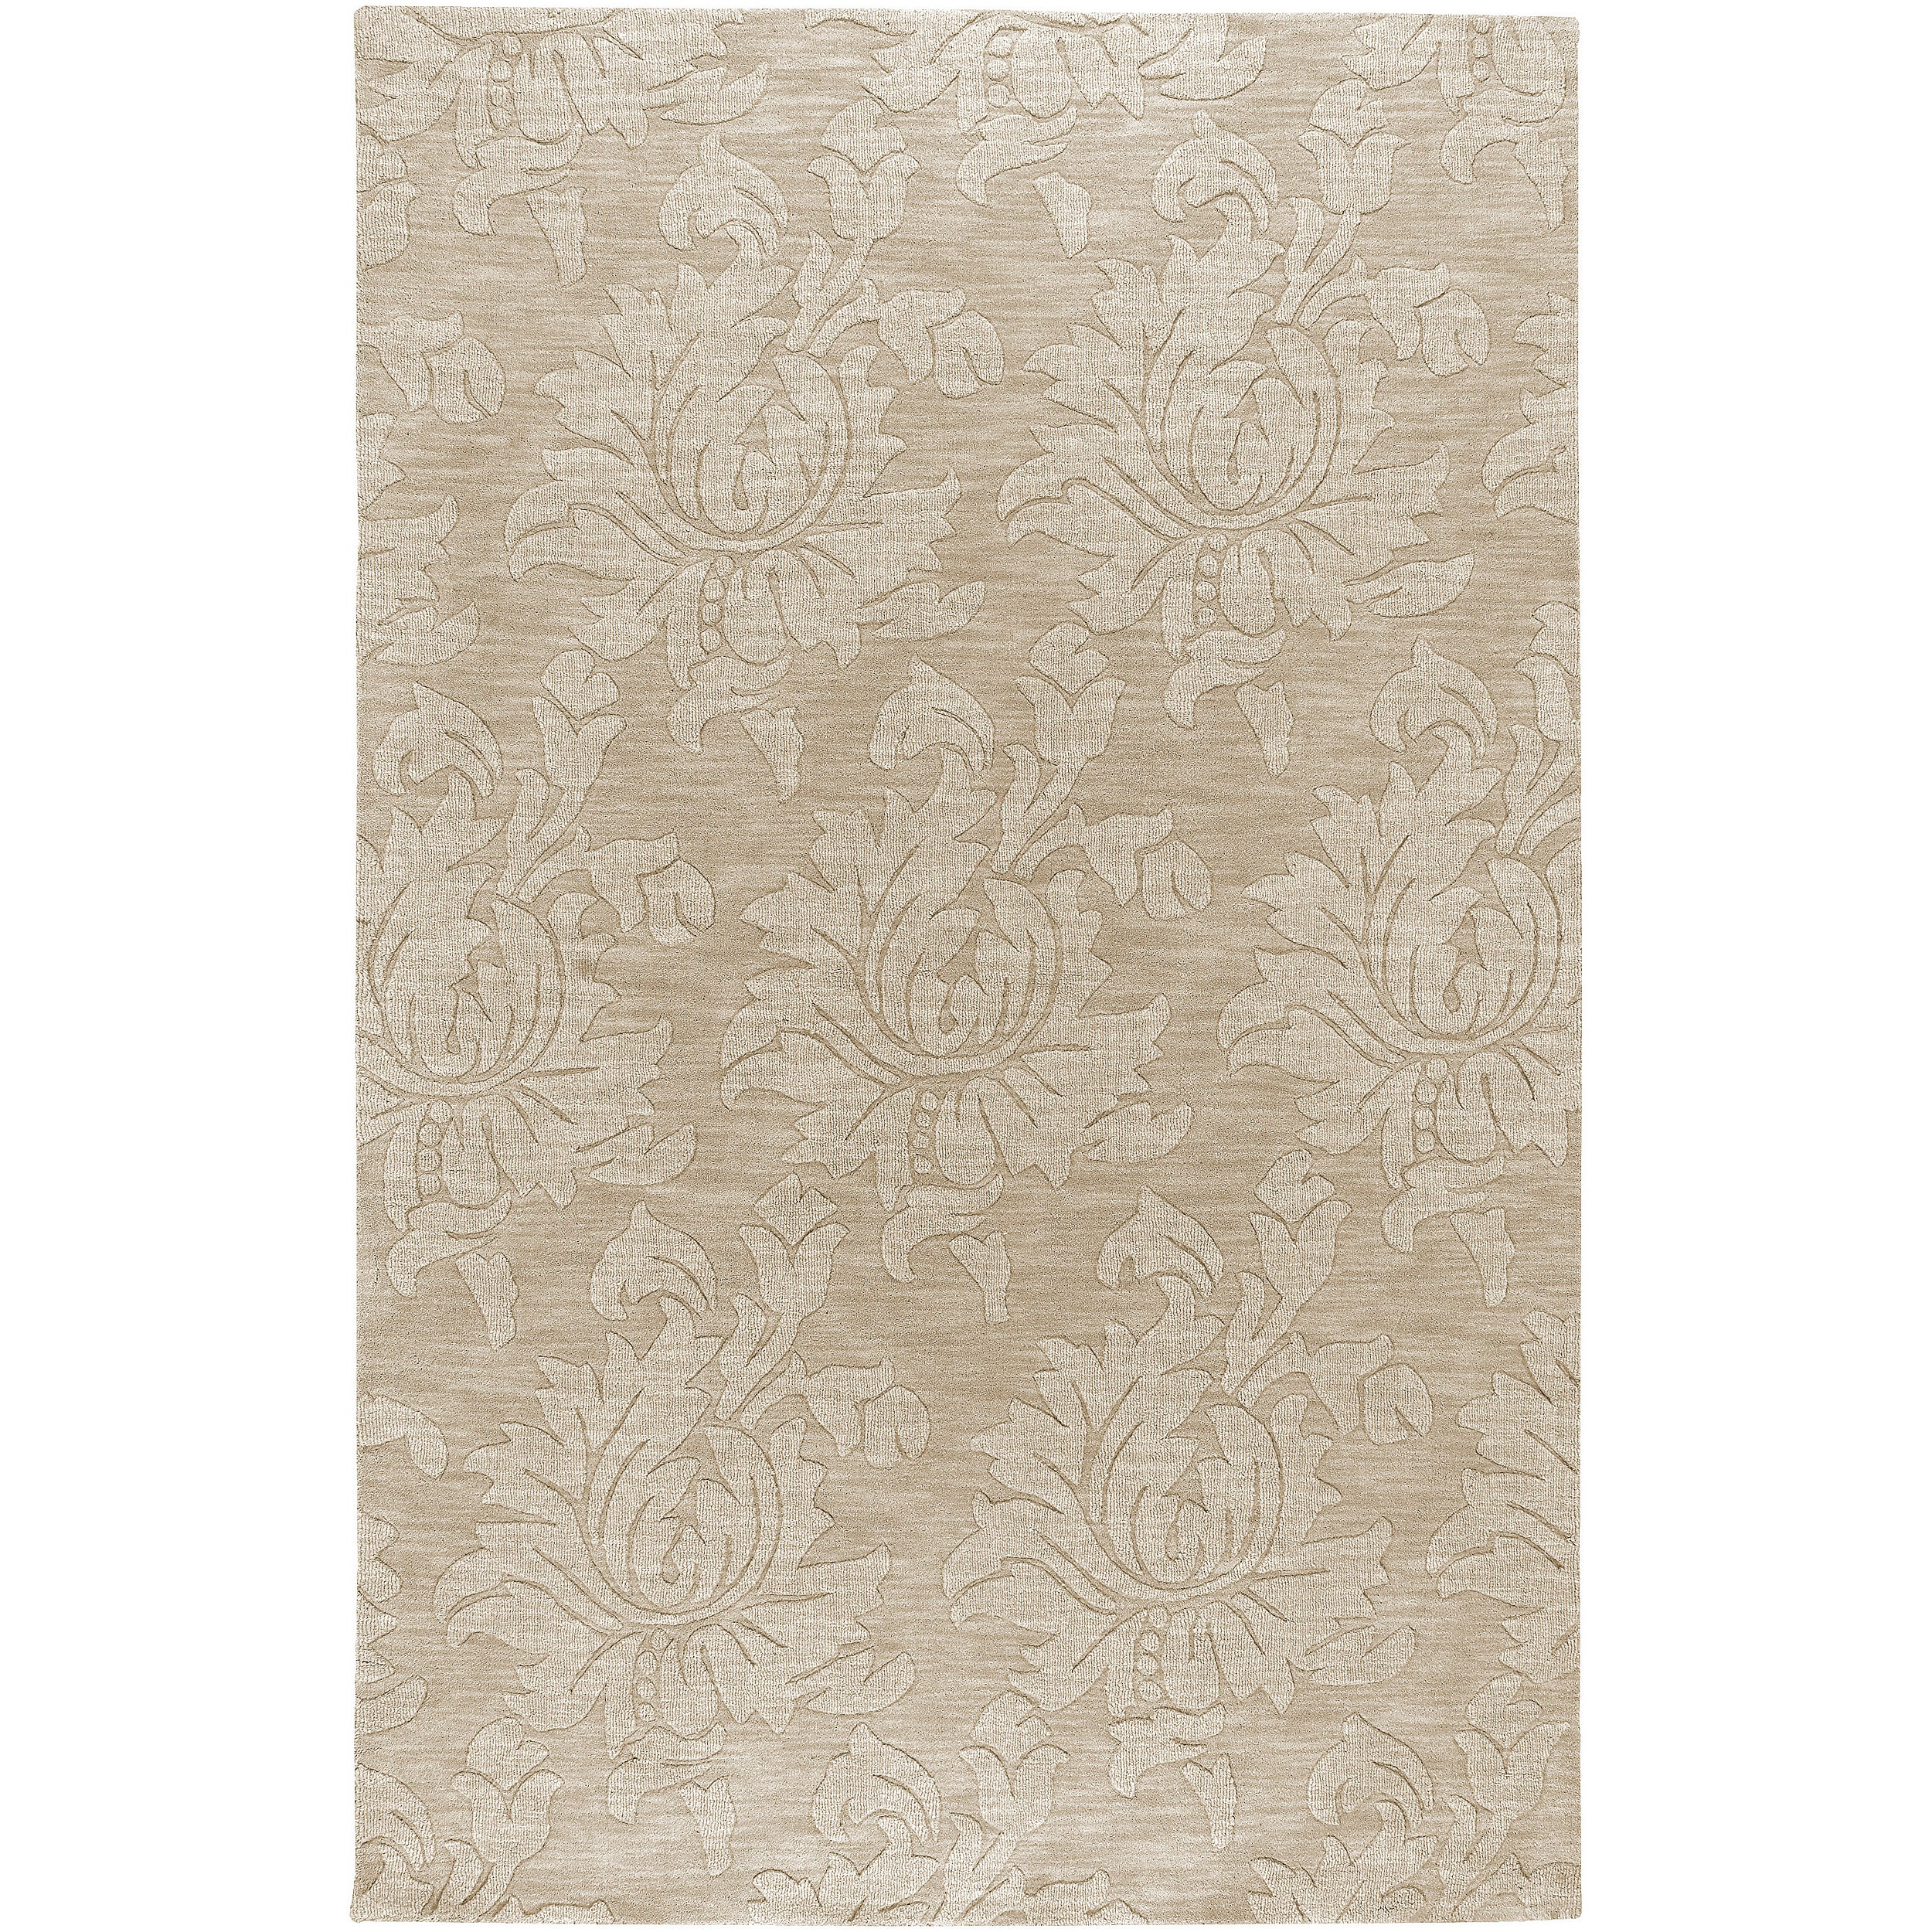 "Hand-crafted Solid Ivory Damask Chiro Wool Area Rug - 3'3"" x 5'3"""